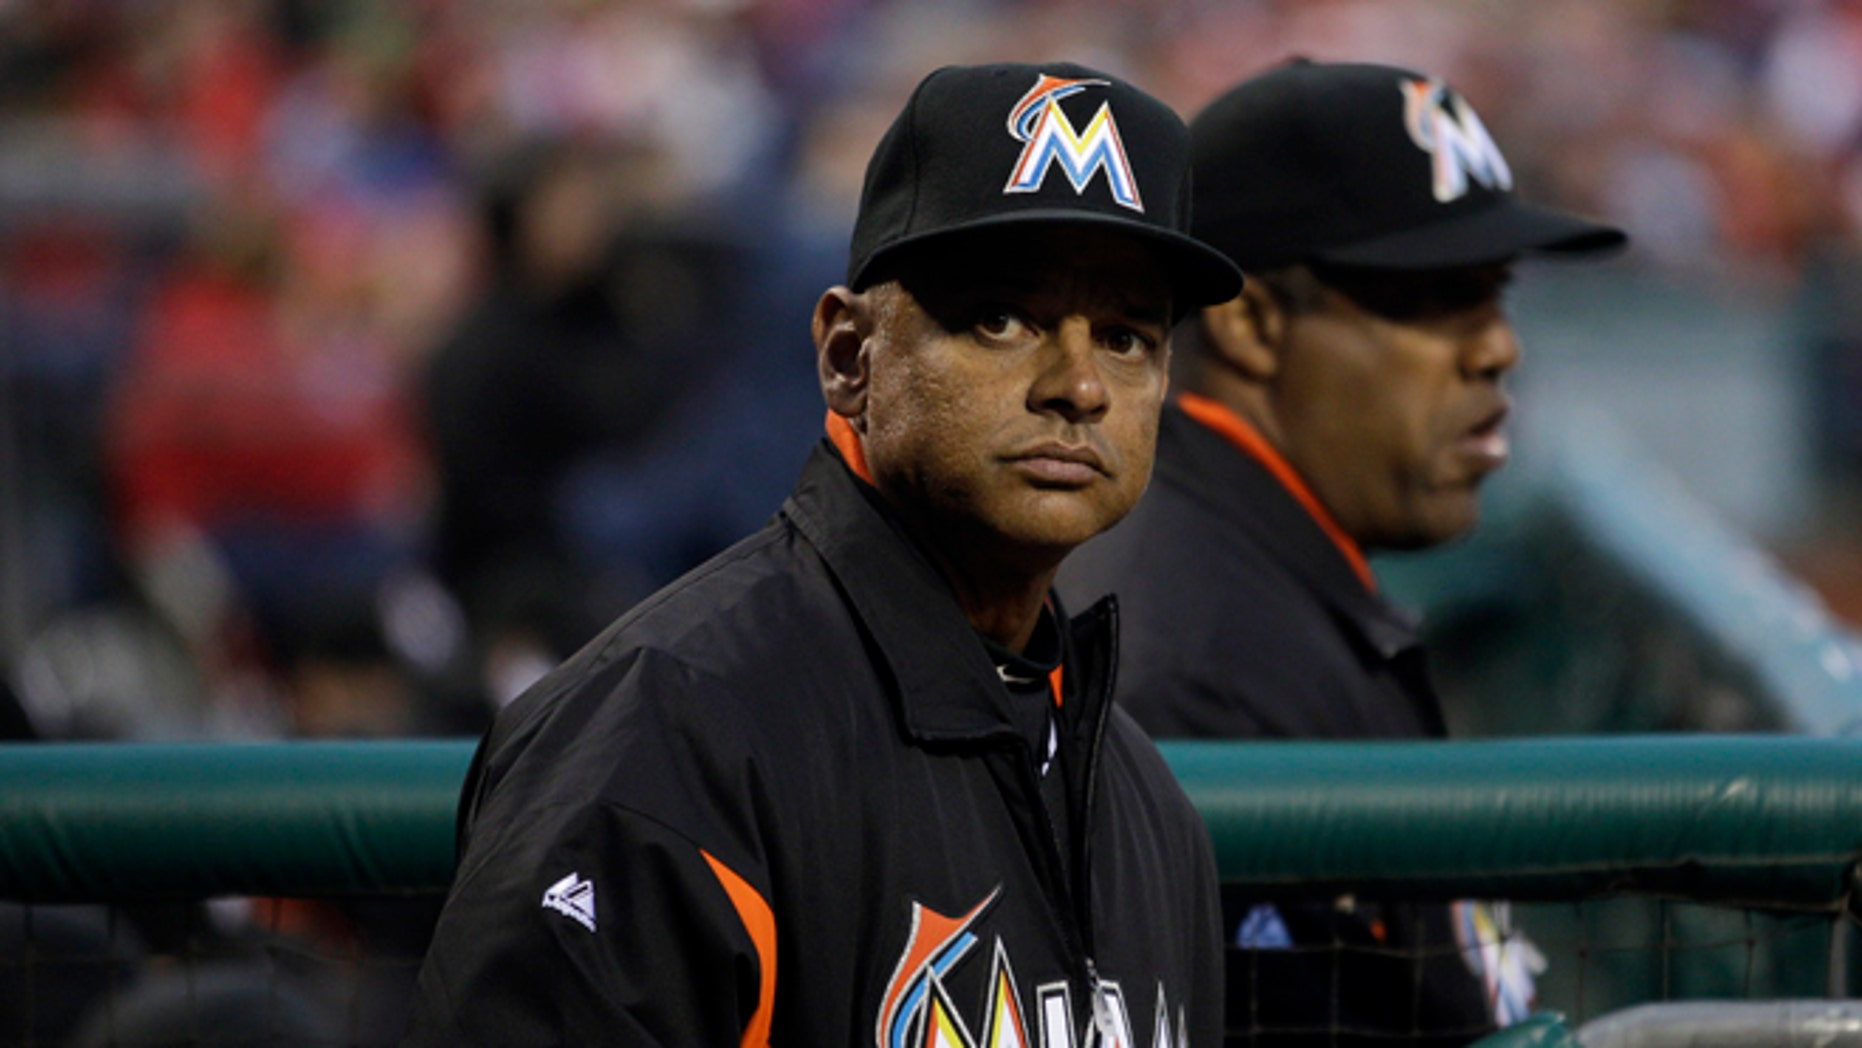 Miami Marlins bench coach Joey Cora watches a baseball game against the Philadelphia Phillies, Wednesday, April 11, 2012, in Philadelphia.